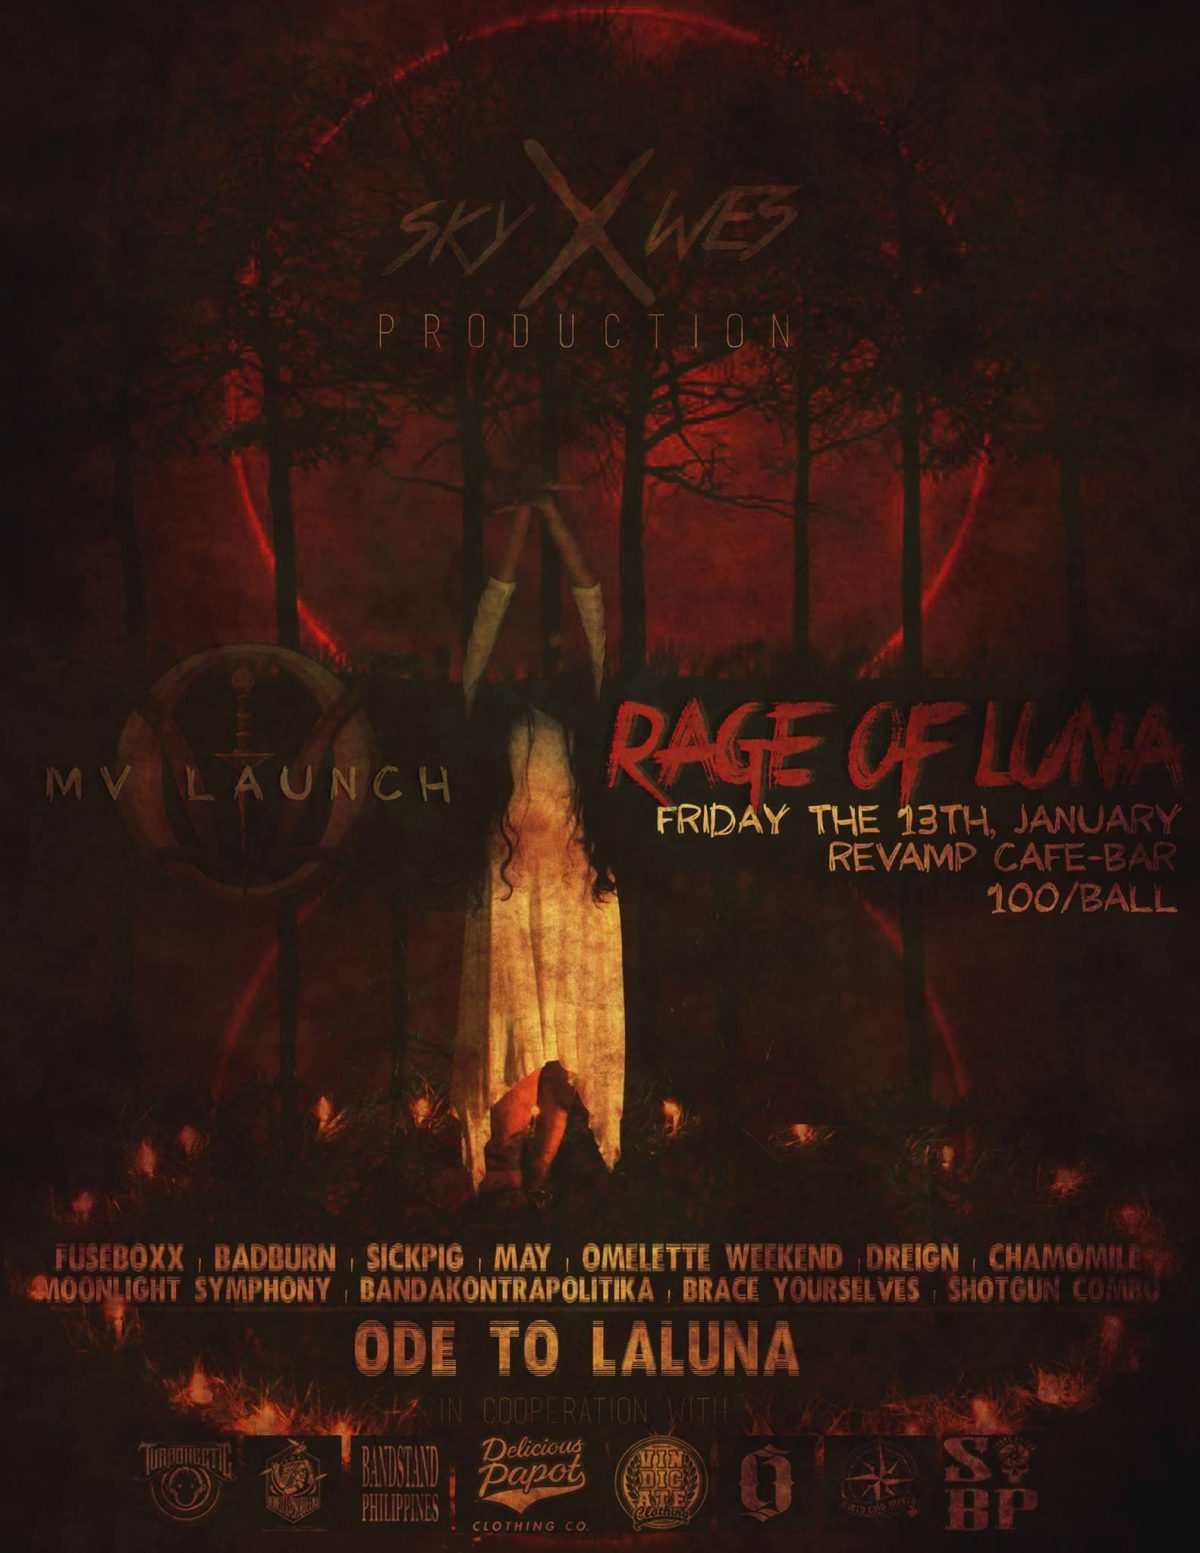 Ode To LaLuna – MV Launch